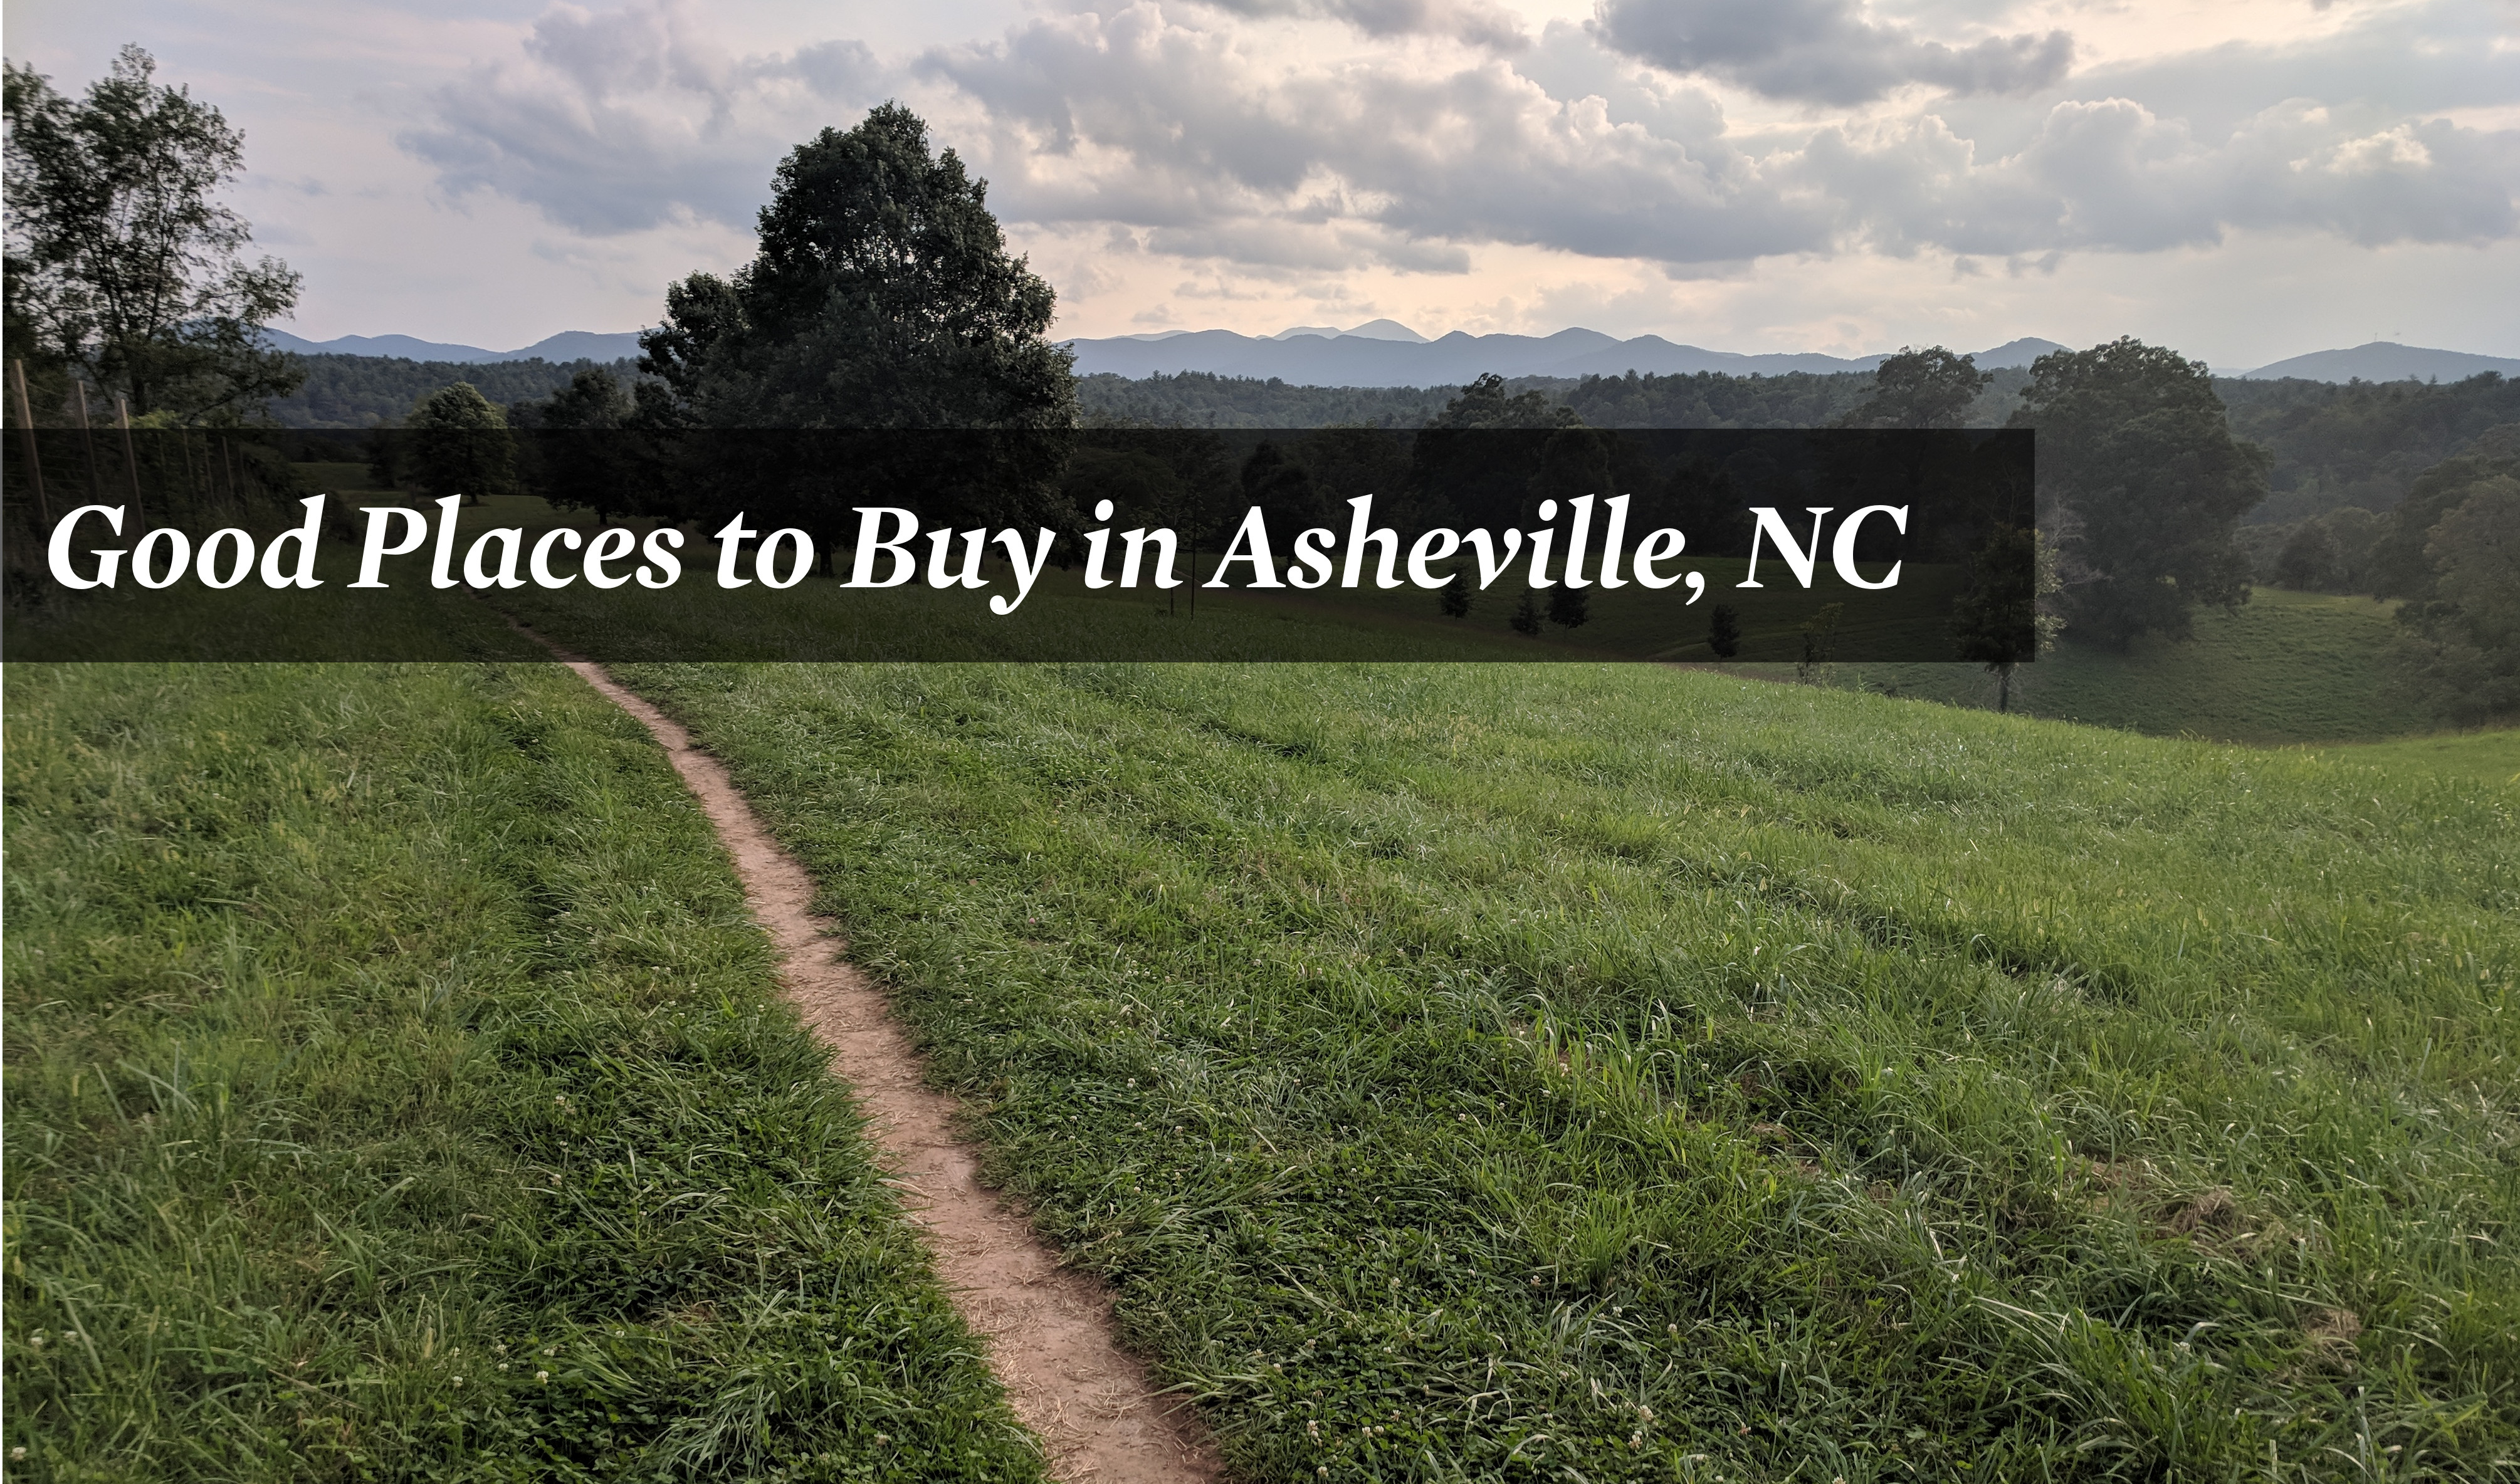 Good Places To Live In Asheville Nc Locations To Buy Property